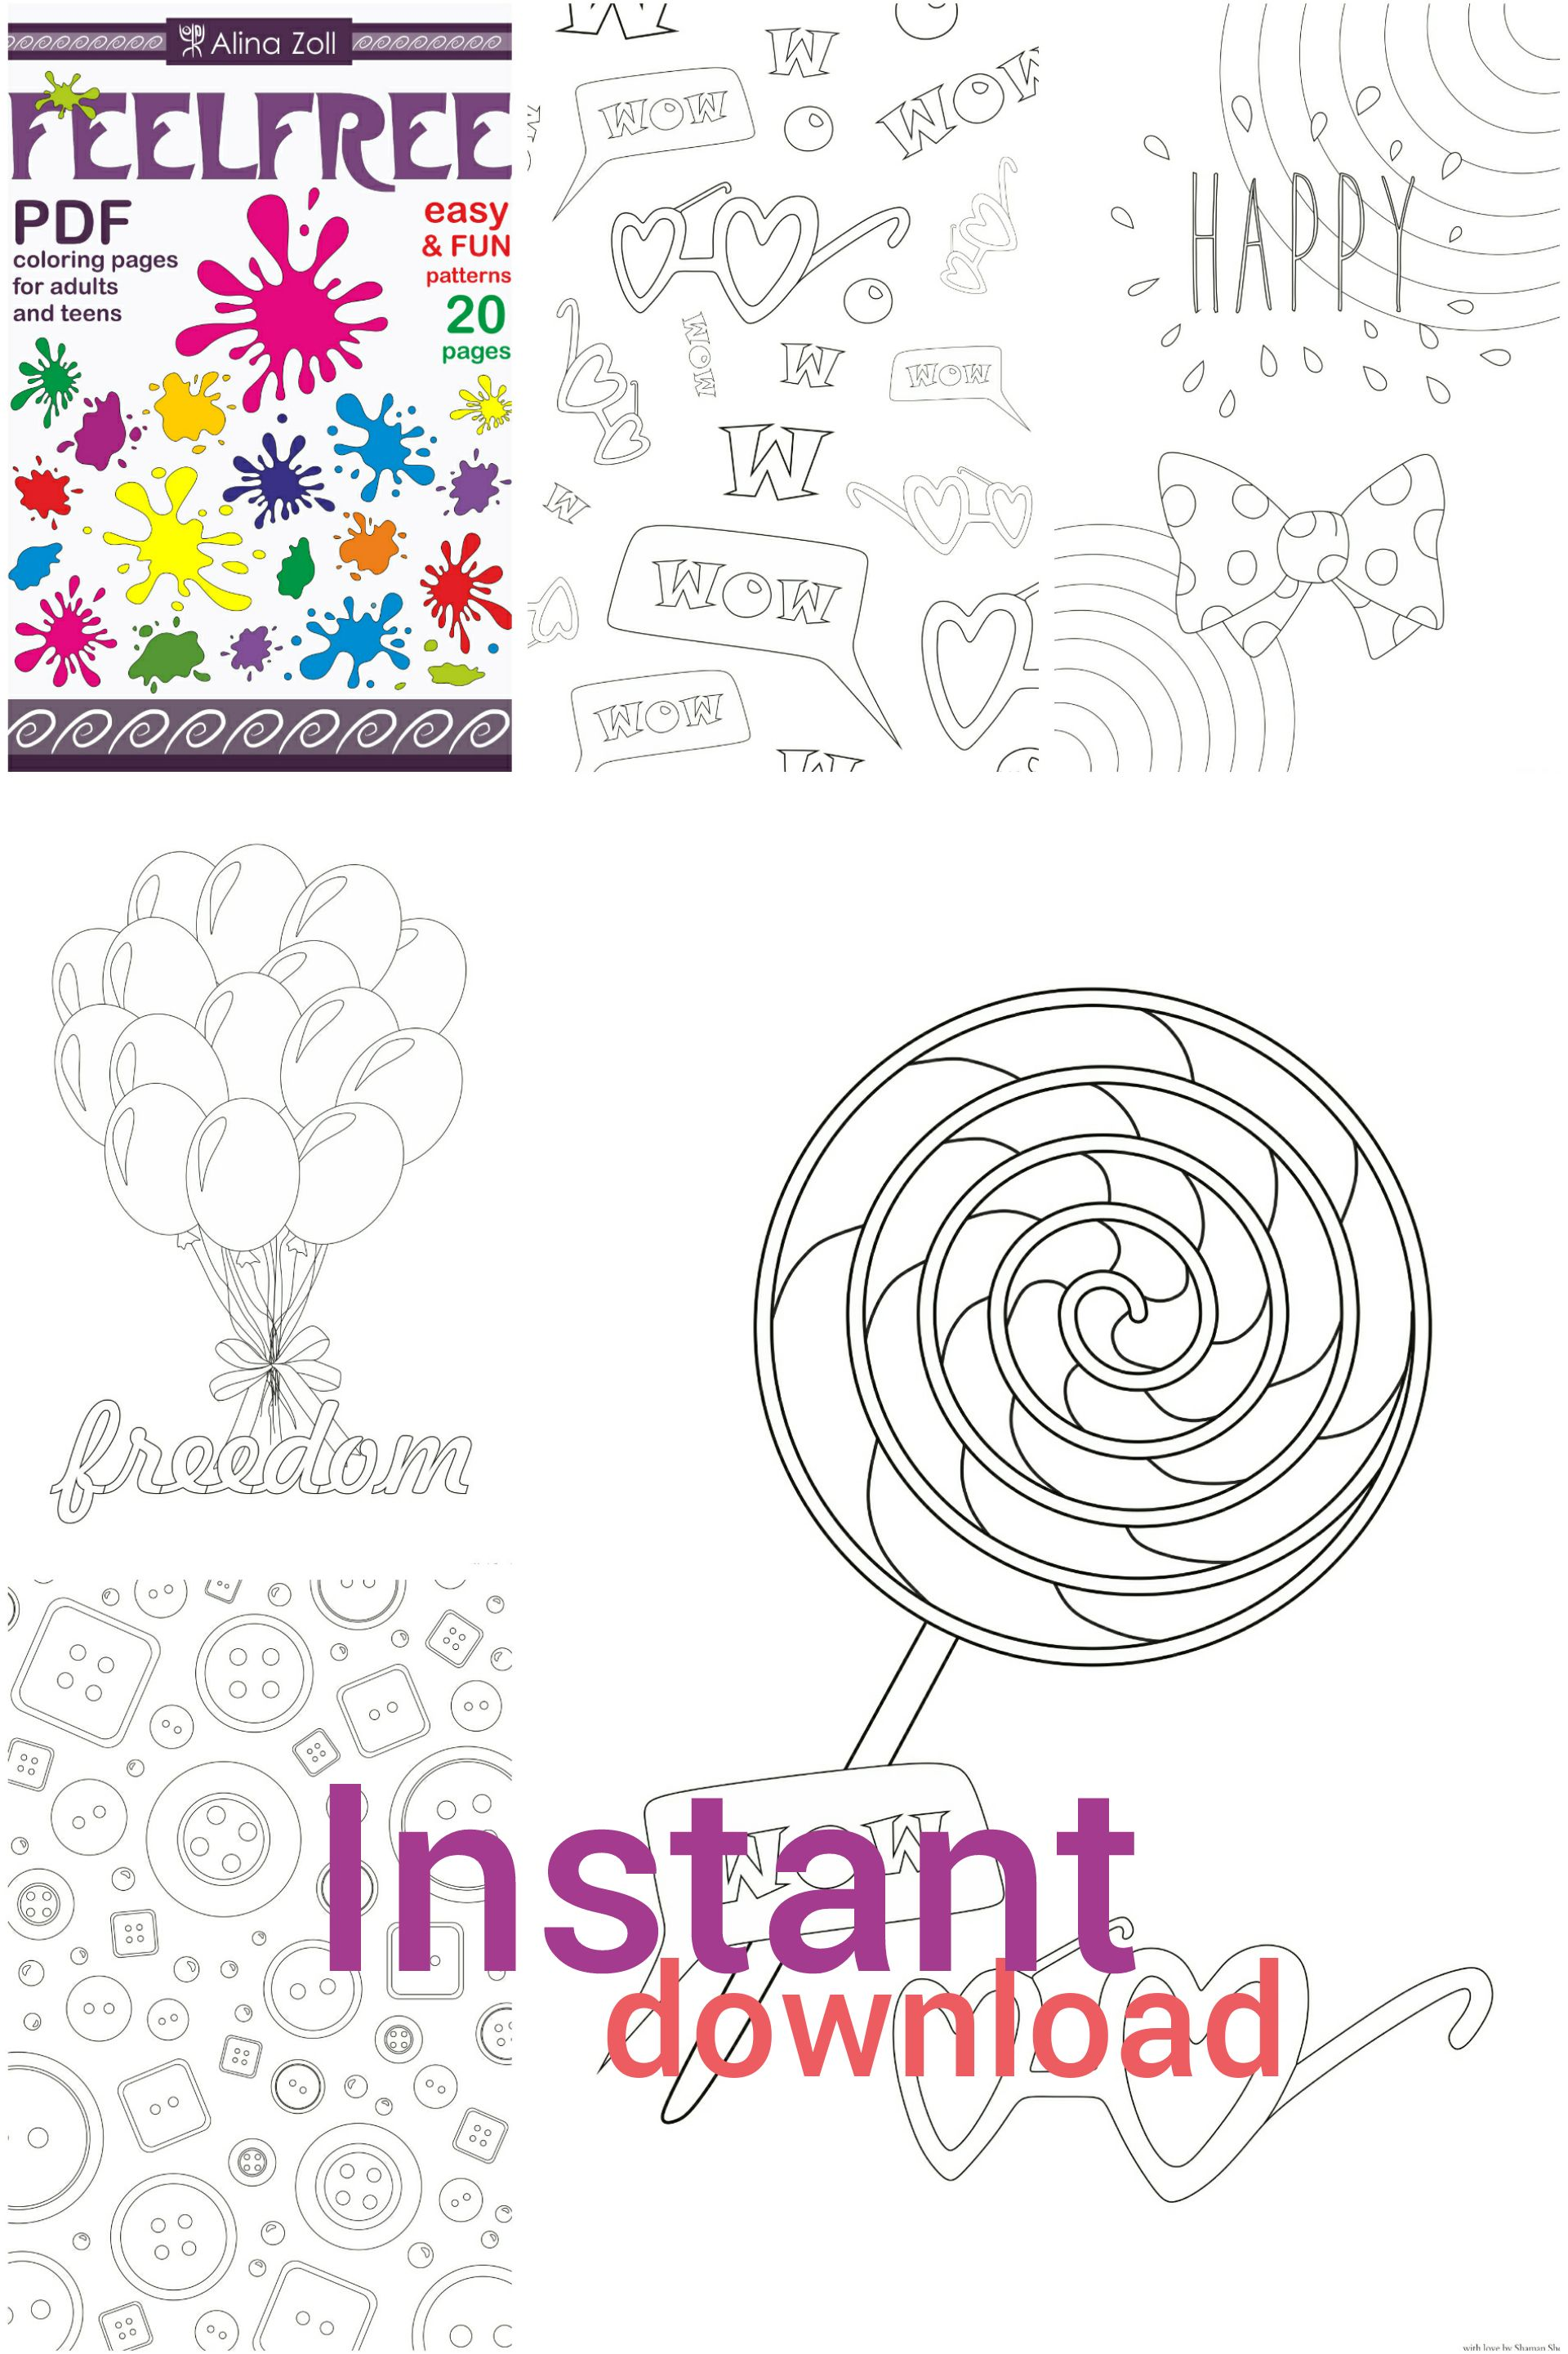 Fun Adult Coloring Book Digital Download Pdf Simple Pages For Grown Ups Easy Printable Patterns Sheets Creative Activity